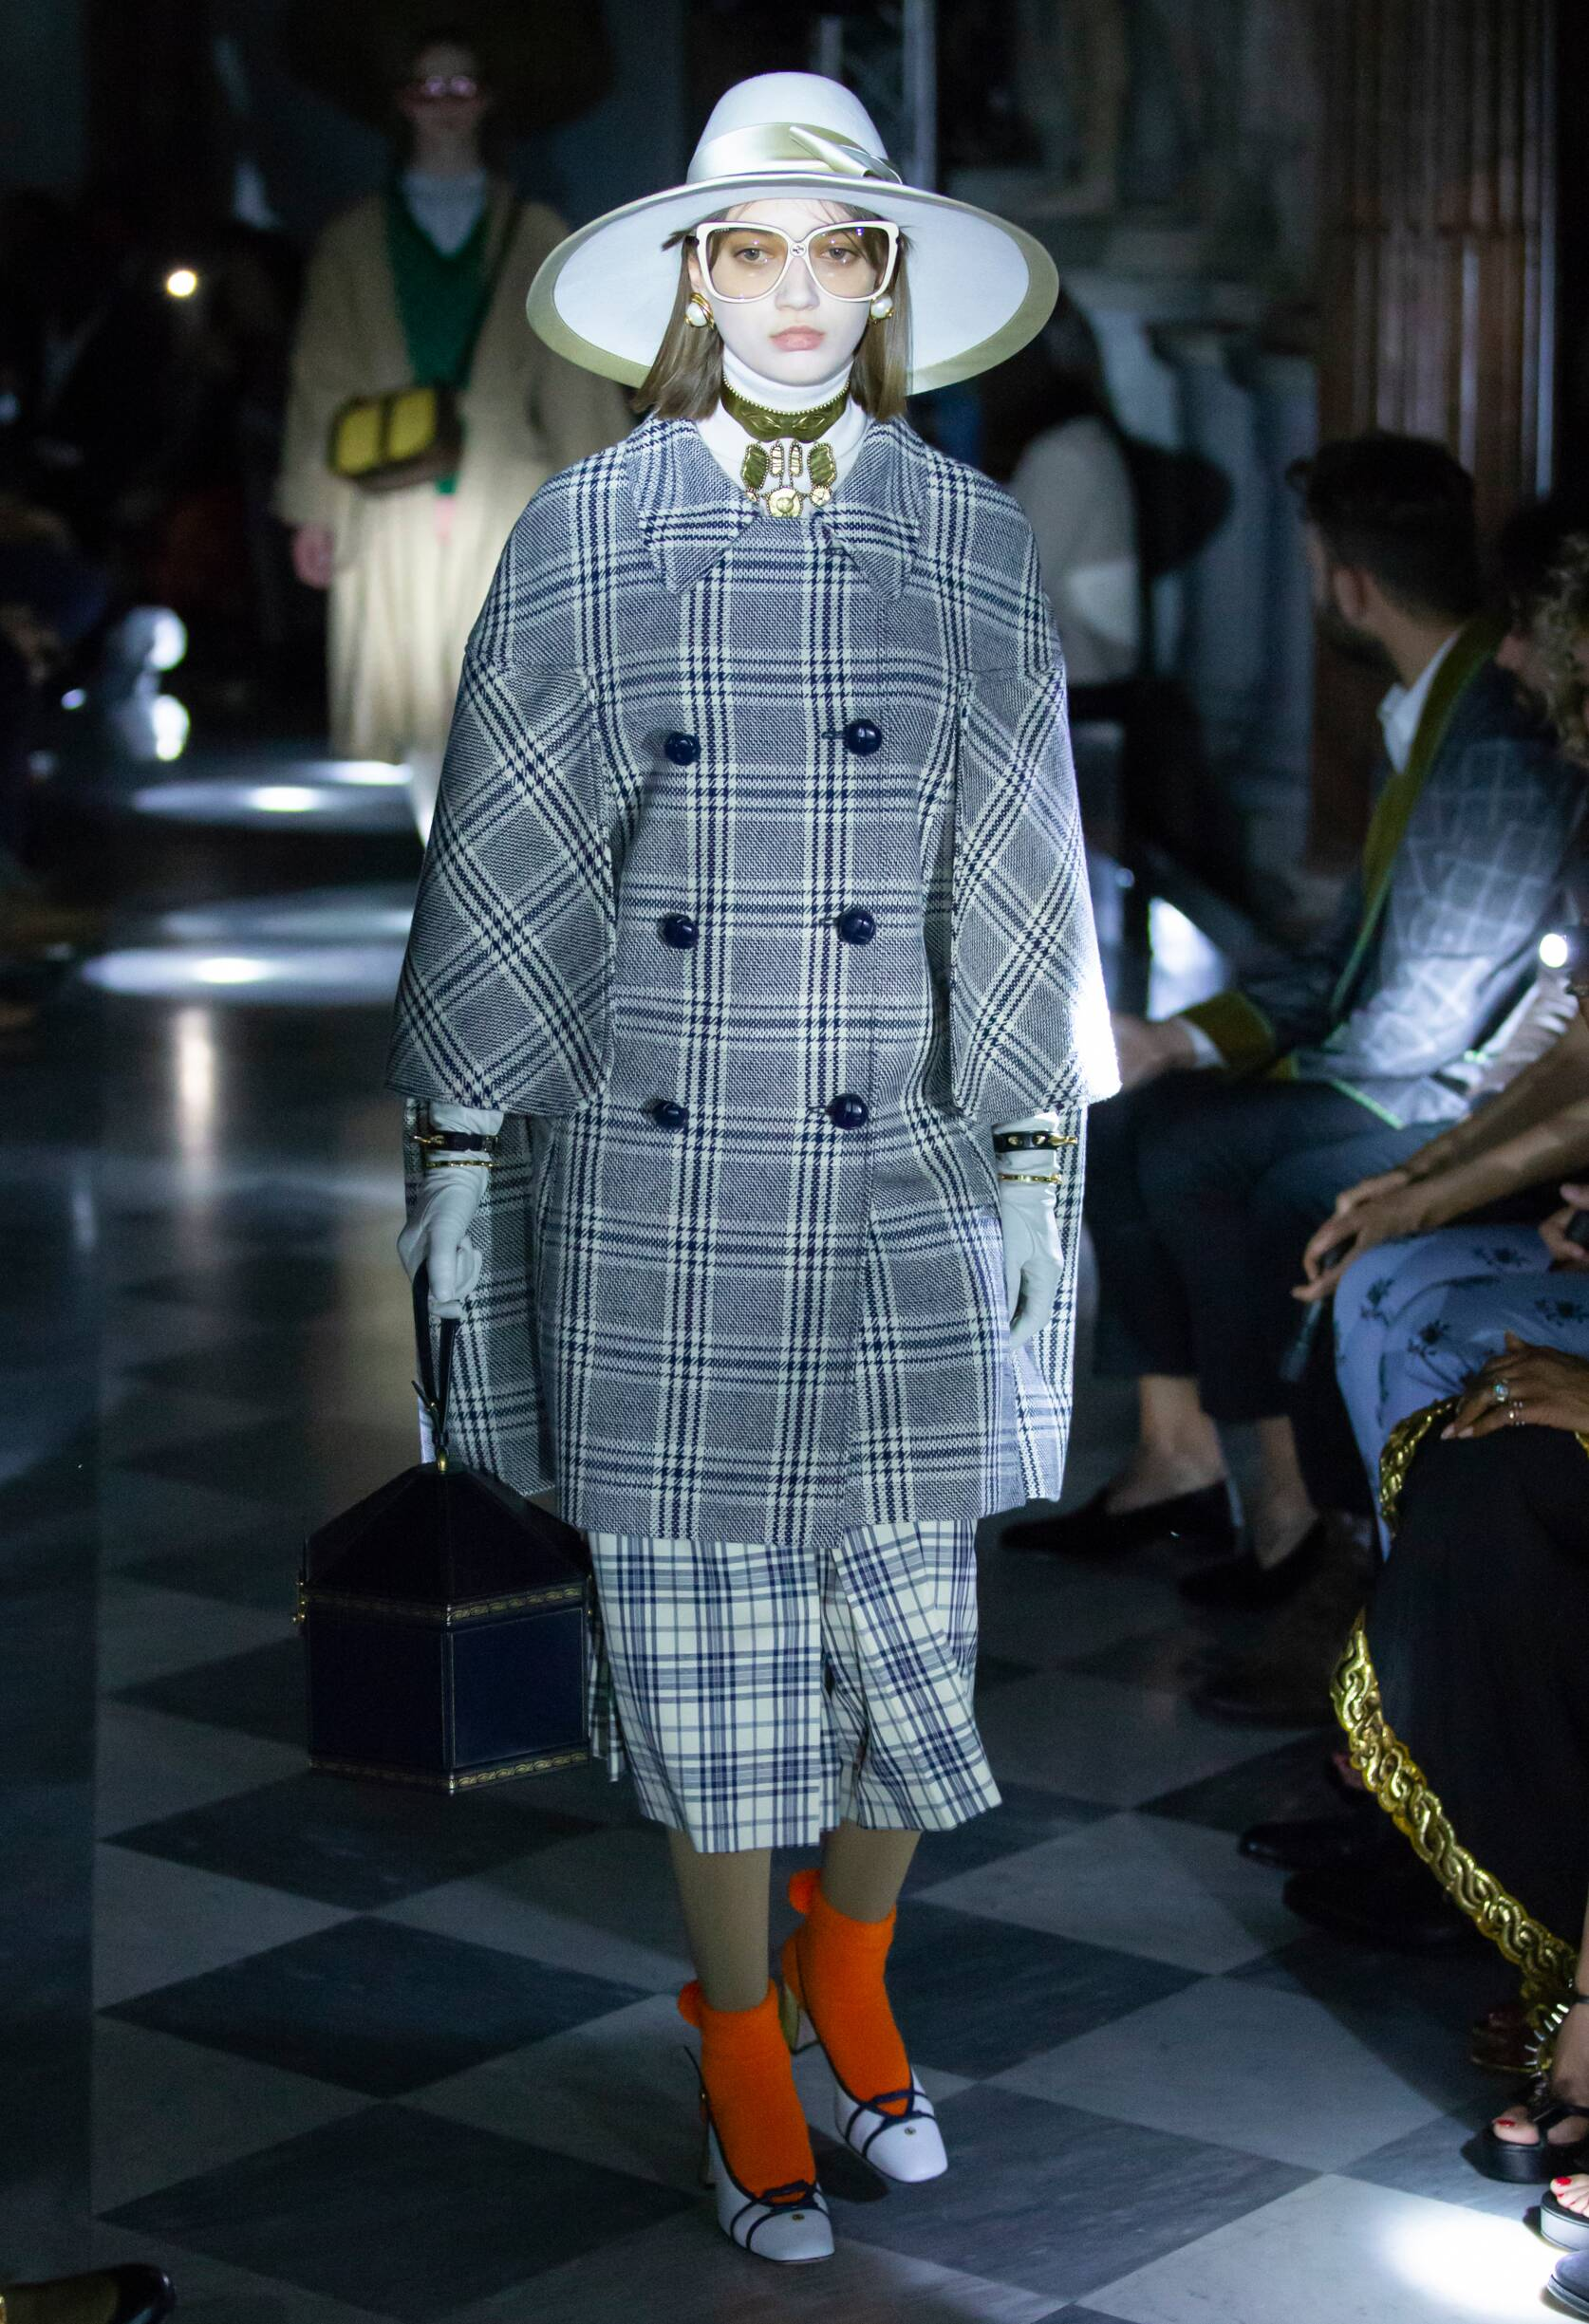 Gucci Cruise 2020 Collection Look 11 Rome